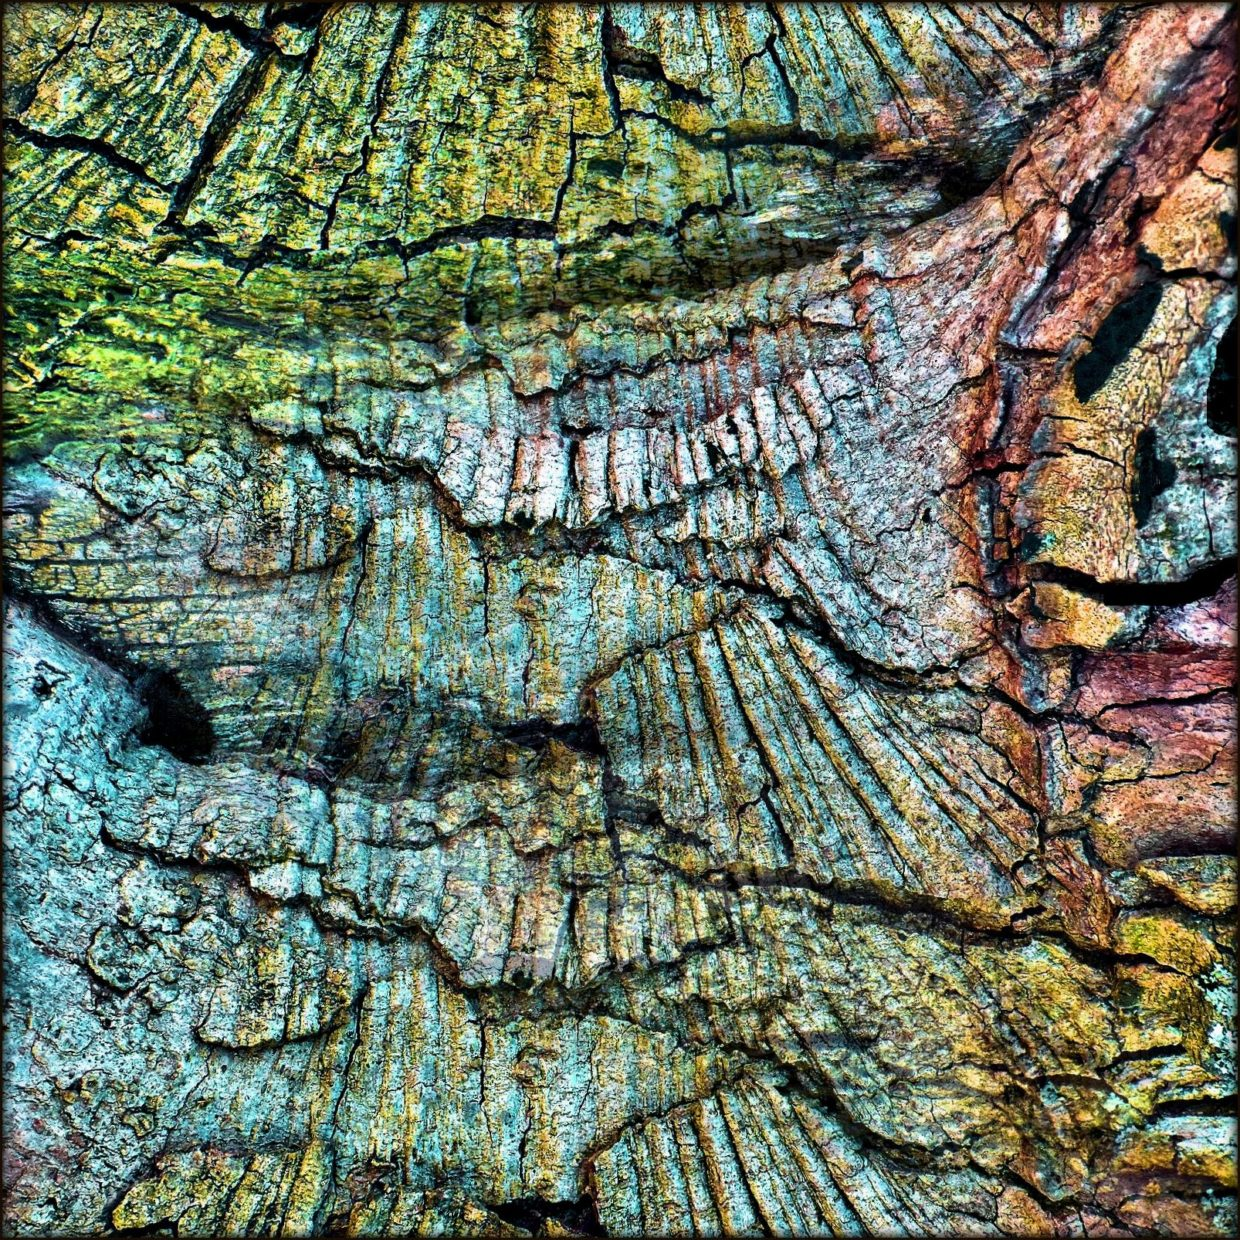 Tree bark with rainbowcolor graffiti